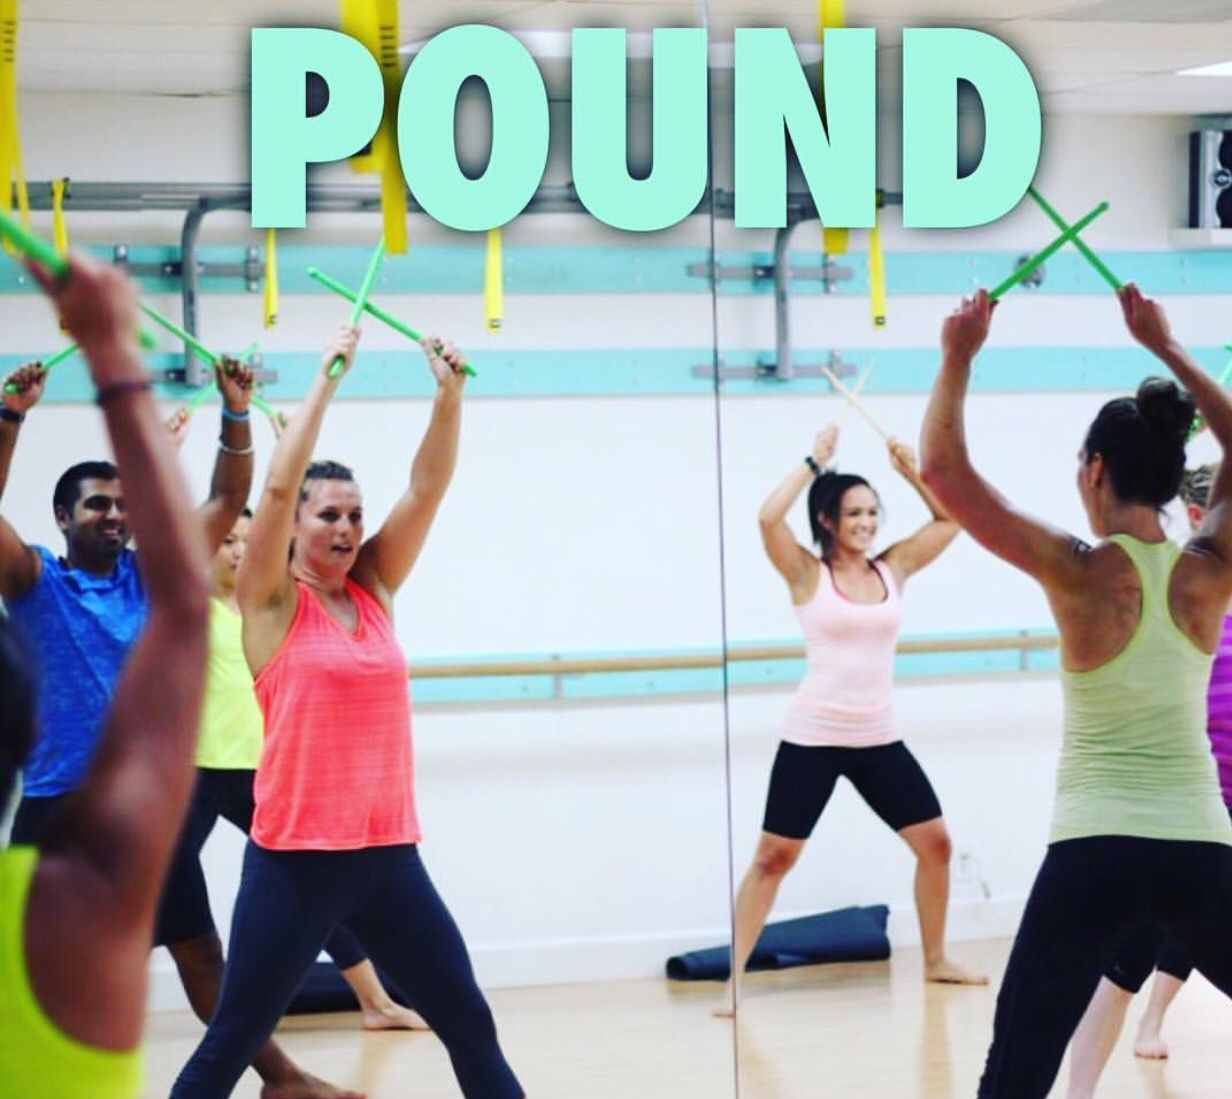 Pop Up Pound Rockout Workout This Saturday At Core Works Fitness Oc 10 30 Am Space Is Limited Fitness Weeke Workout Results Weekend Workout Fitness Coach